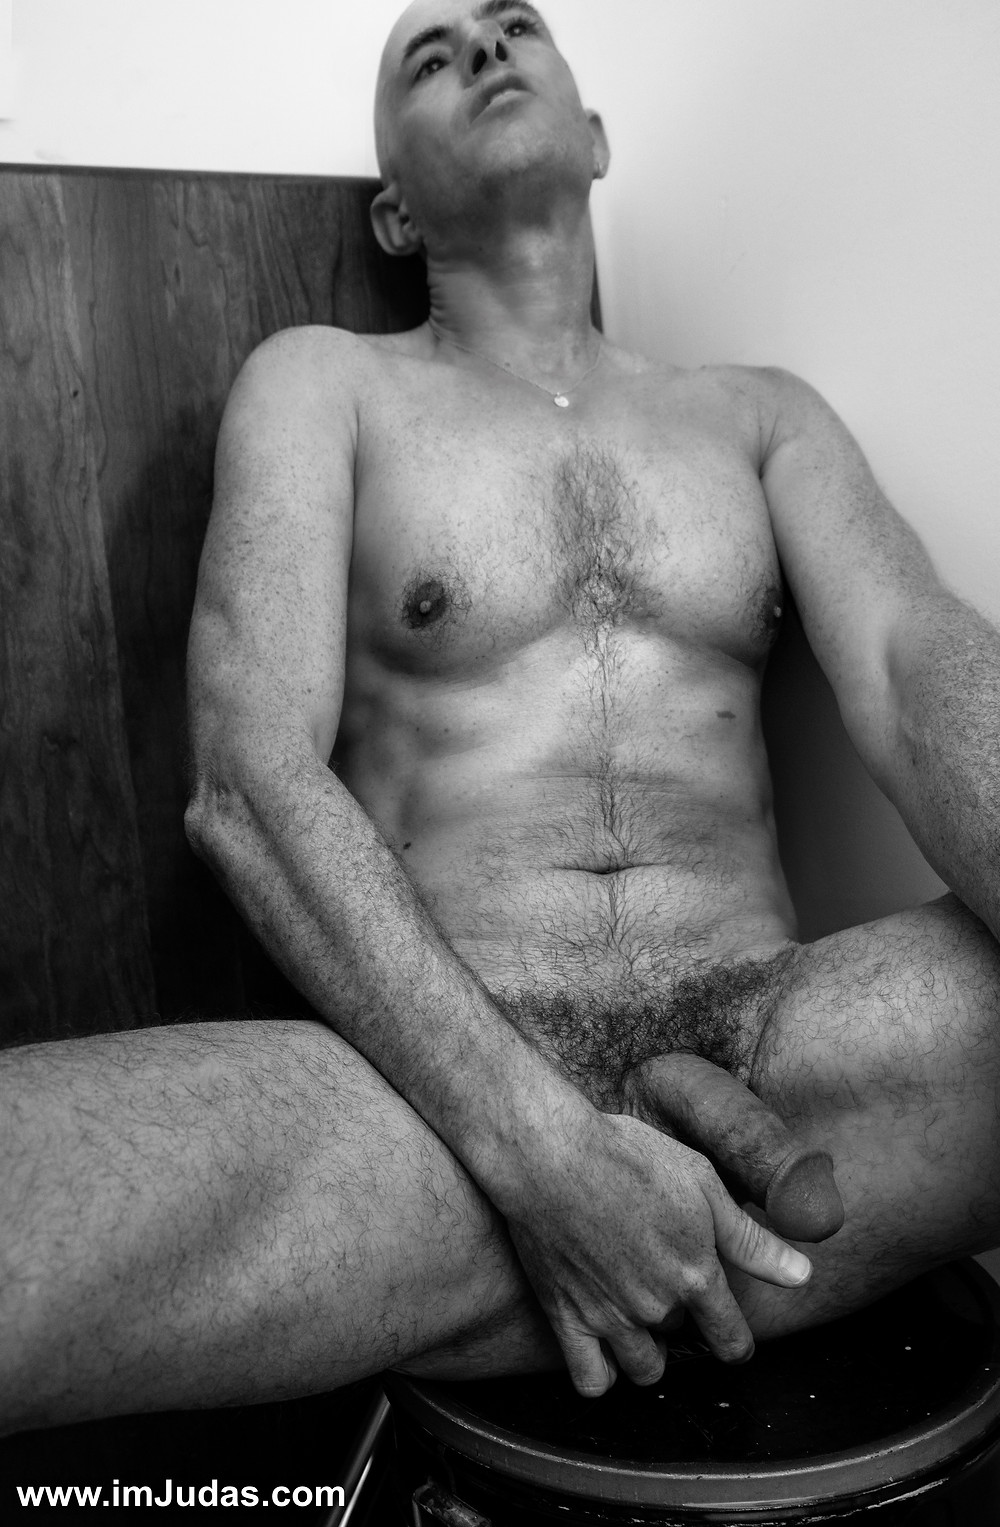 My cock wouldn't get hard no matter how deep my finger went into my love hole